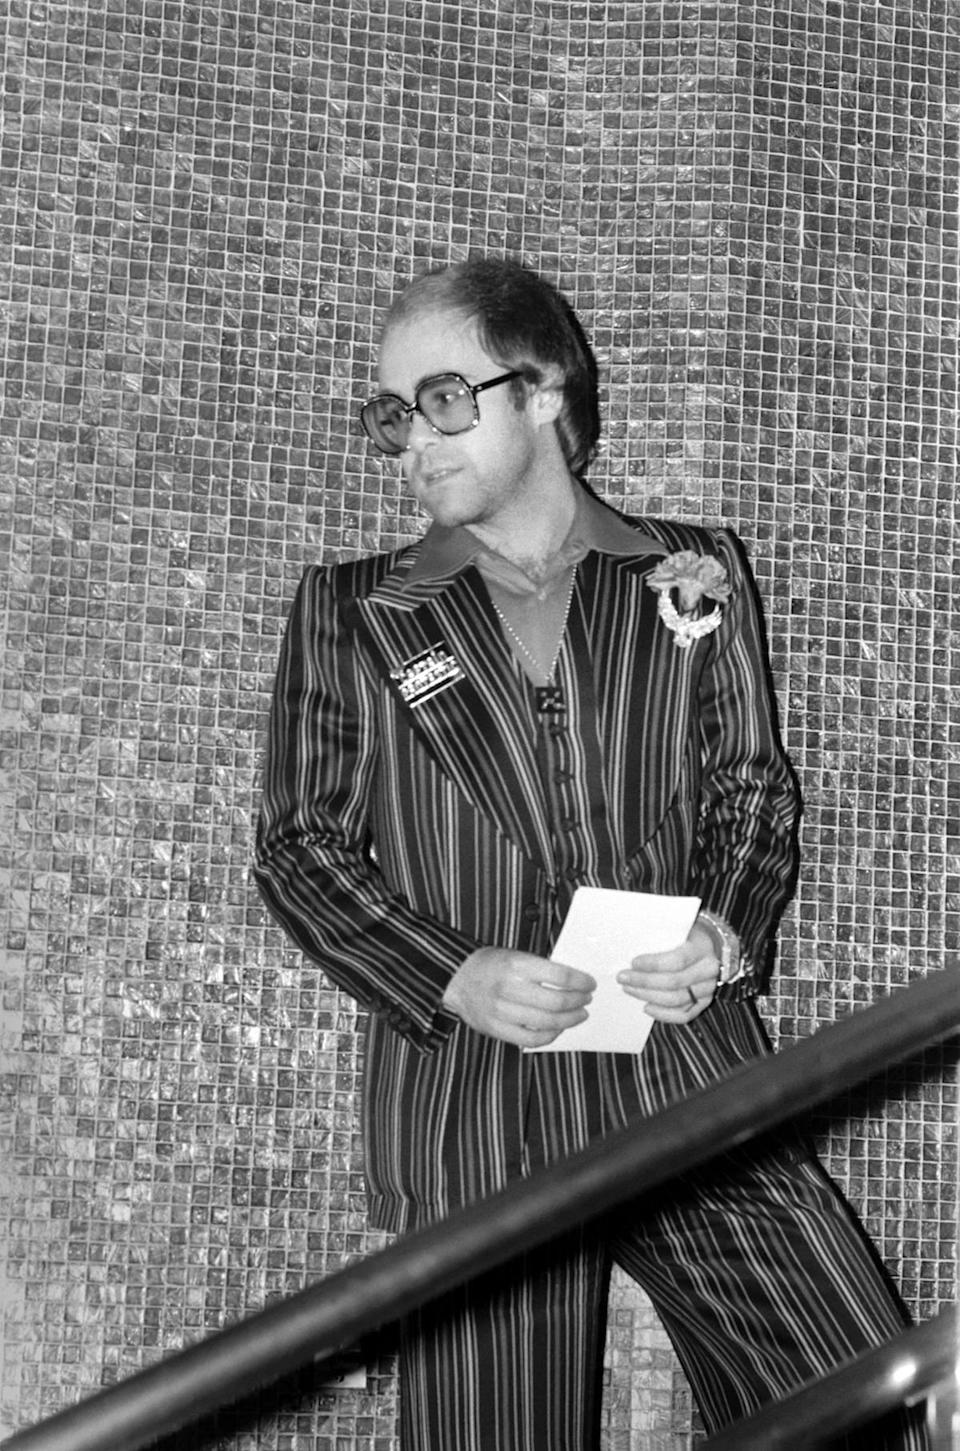 <p>Elton John photographed in 1975 wearing a striped suit with tinted sunglasses, which was very '70s relaxed chic for the musician. (Photo: Getty Images) </p>